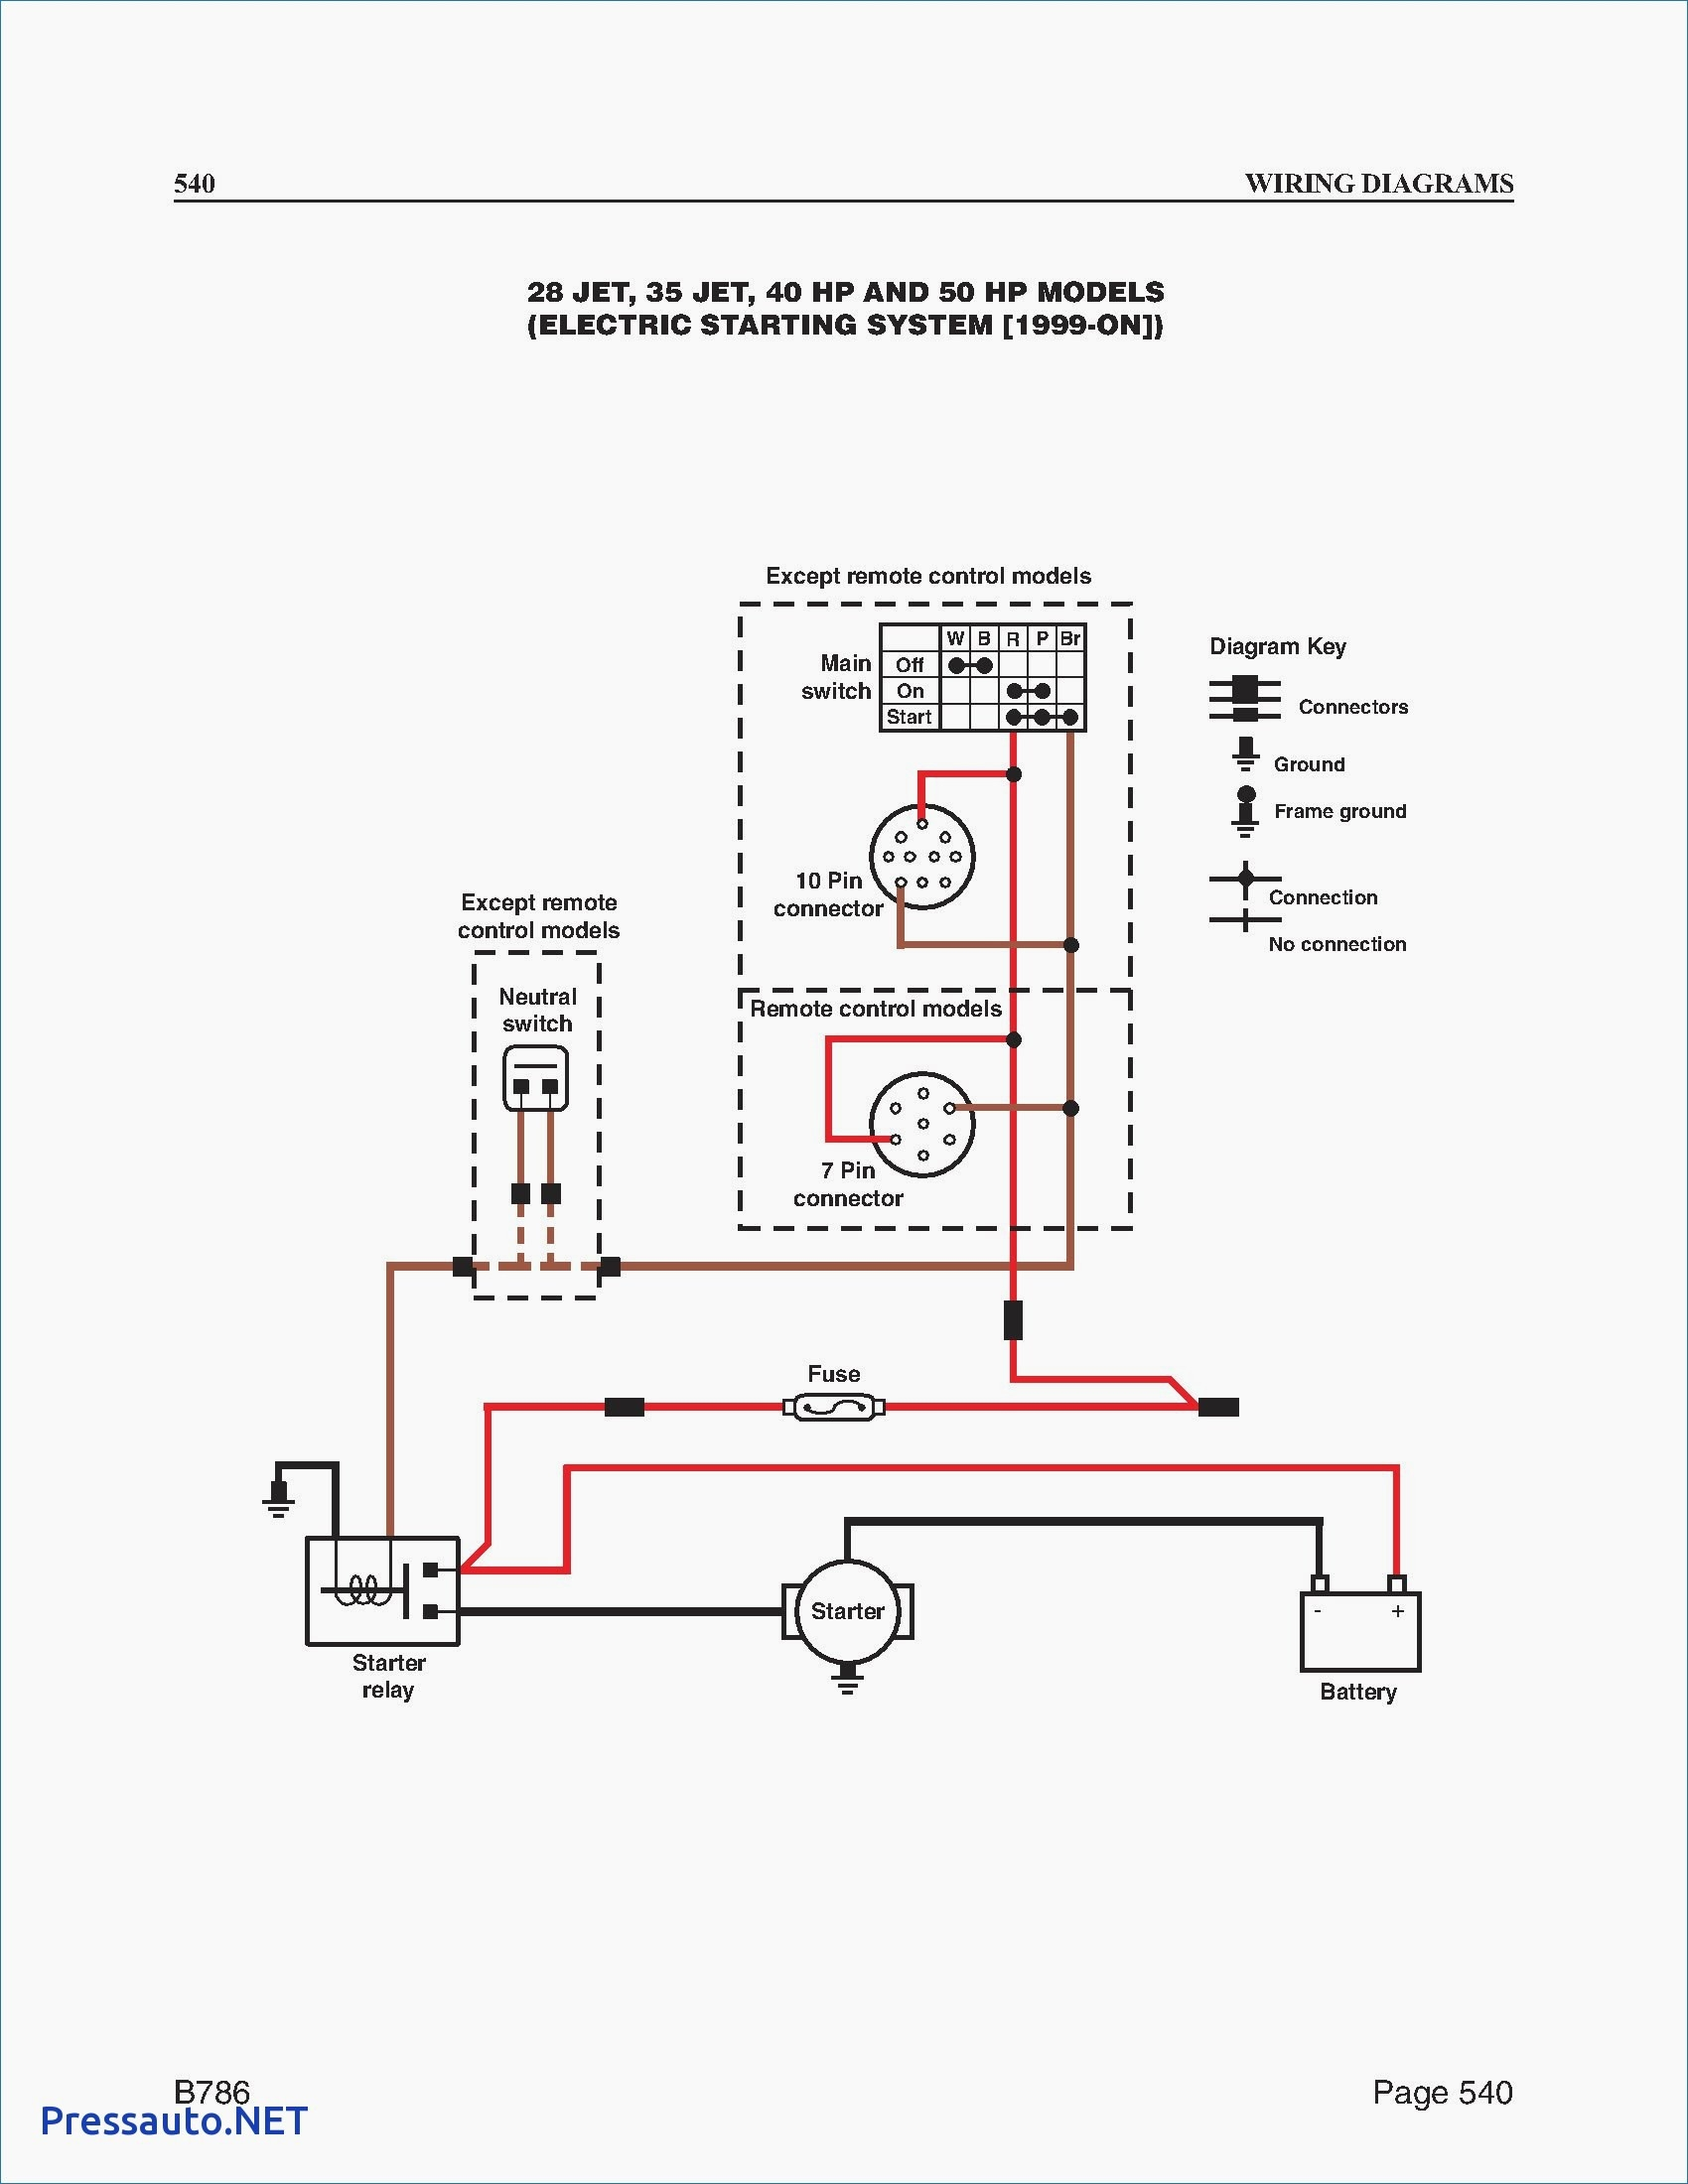 Rib D Wiring Diagram